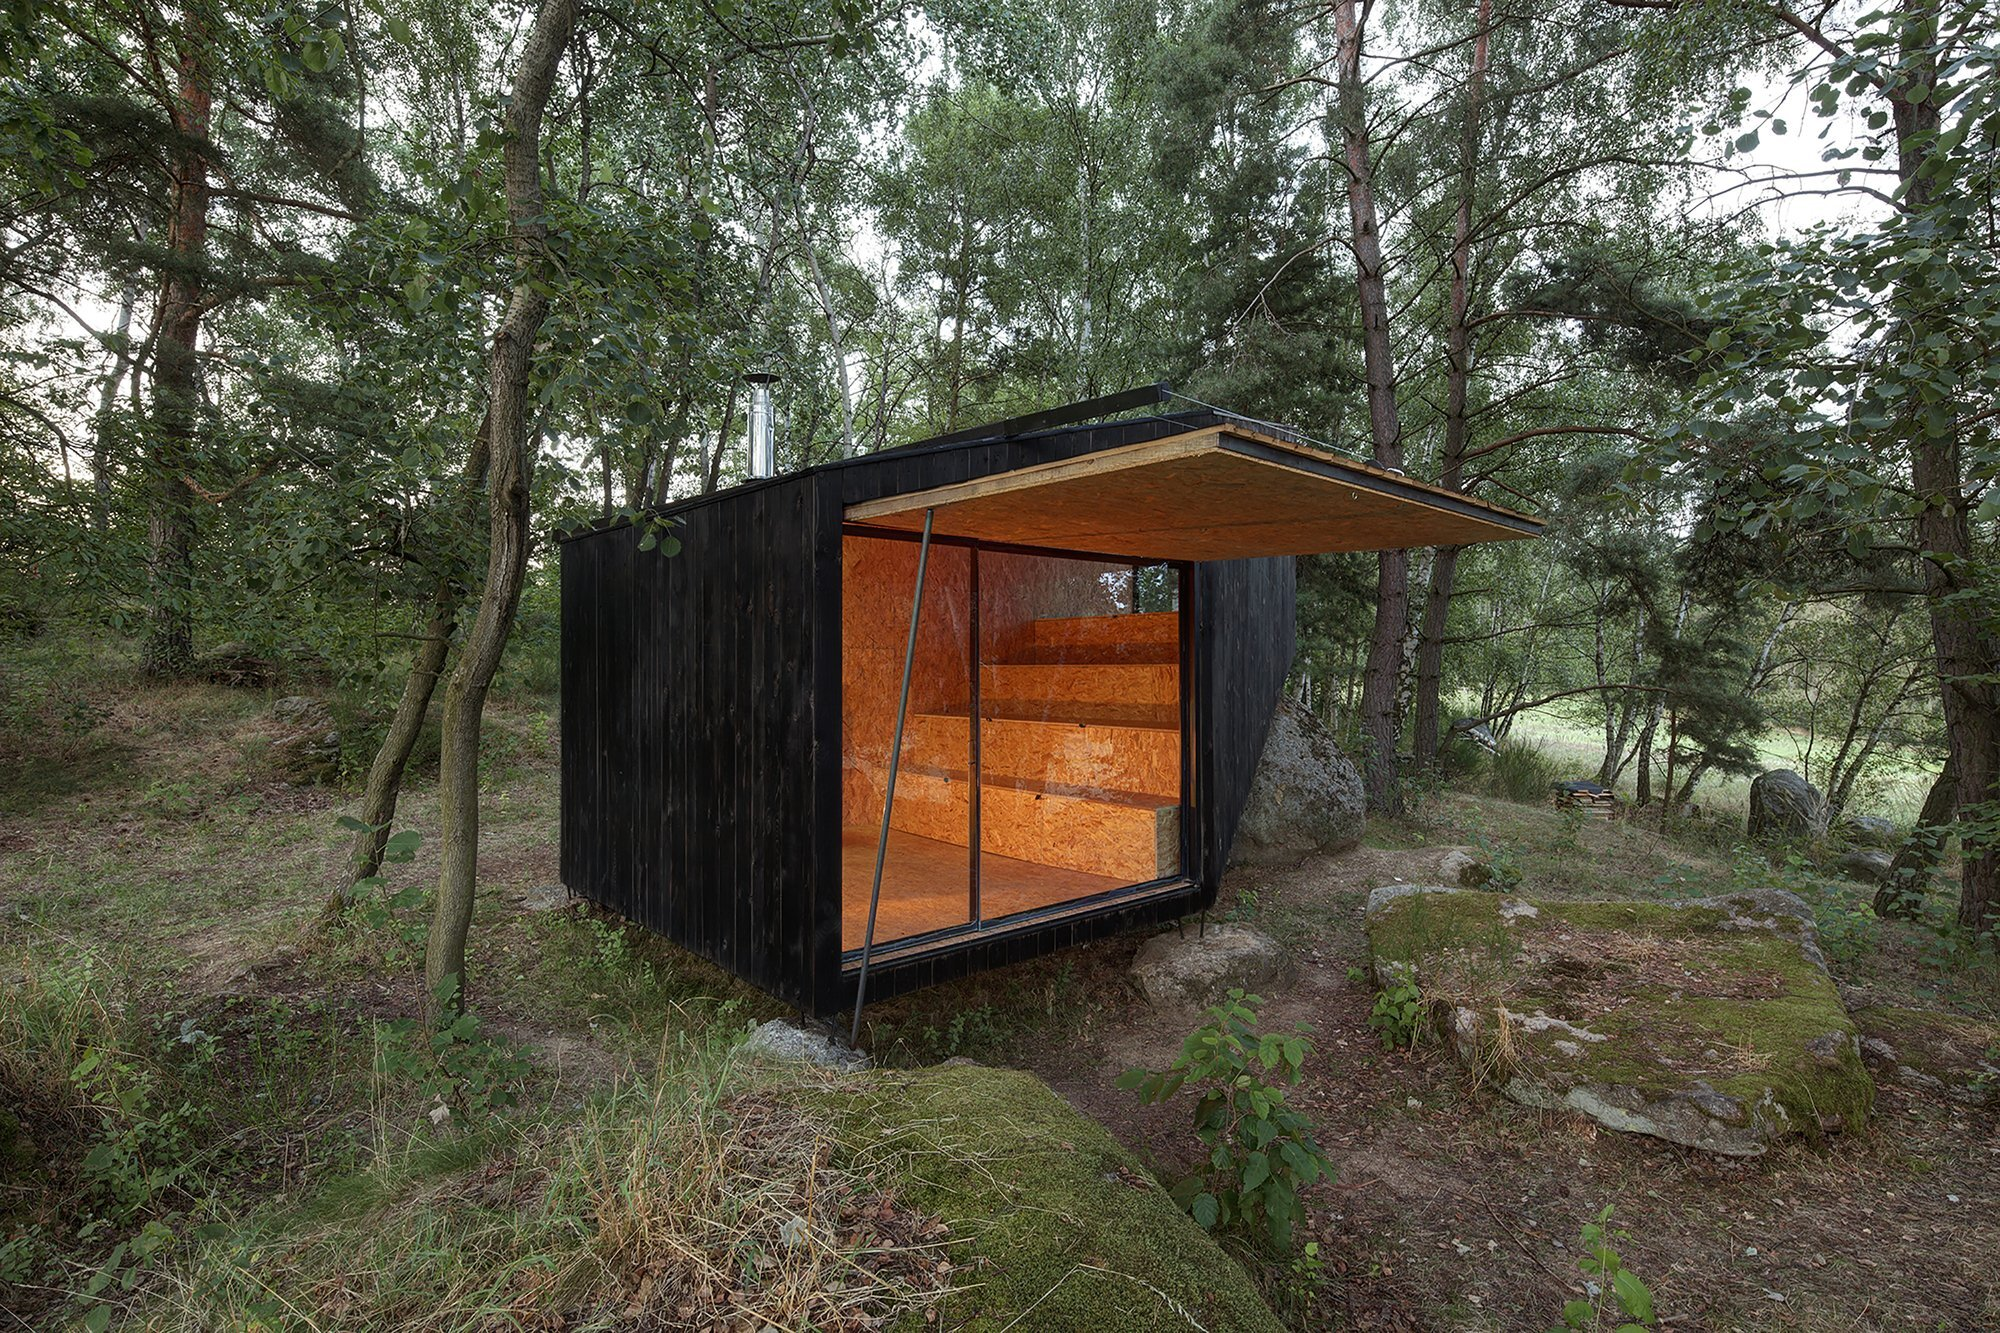 Forest Retreat - Uhlik architekti - Czech Republic - Exterior Open Wall Section - Humble Homes